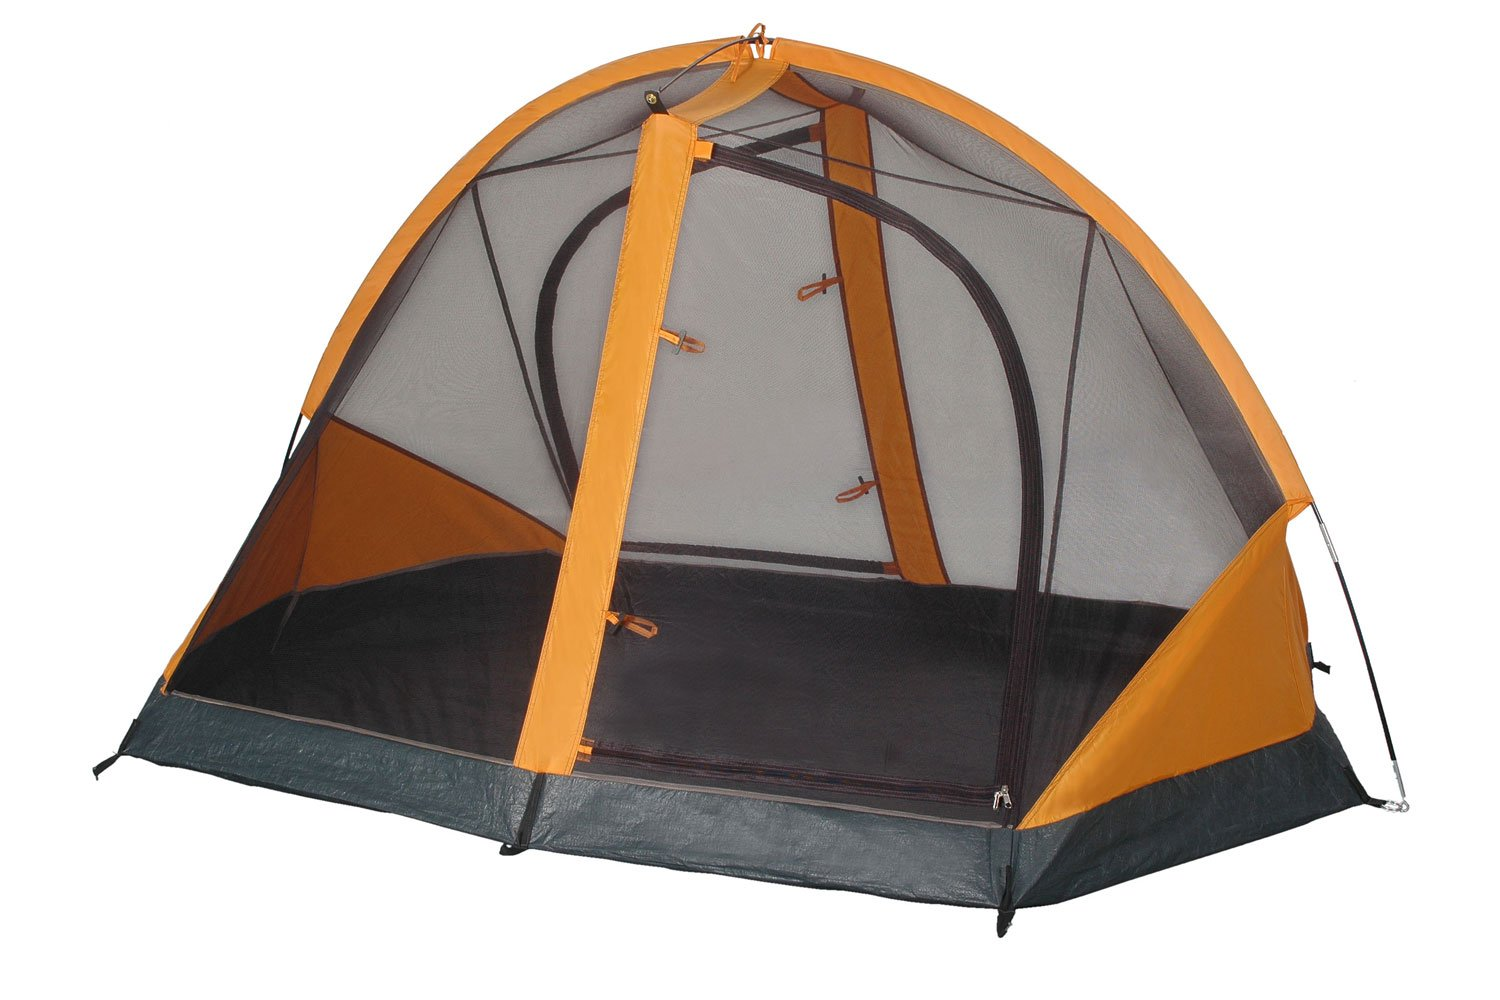 Amazon.com  GigaTent Yellowstone Backpacking Lightweight Tent 5 x 7-Feet x 45-Inch  Sports u0026 Outdoors  sc 1 st  Amazon.com & Amazon.com : GigaTent Yellowstone Backpacking Lightweight Tent 5 ...